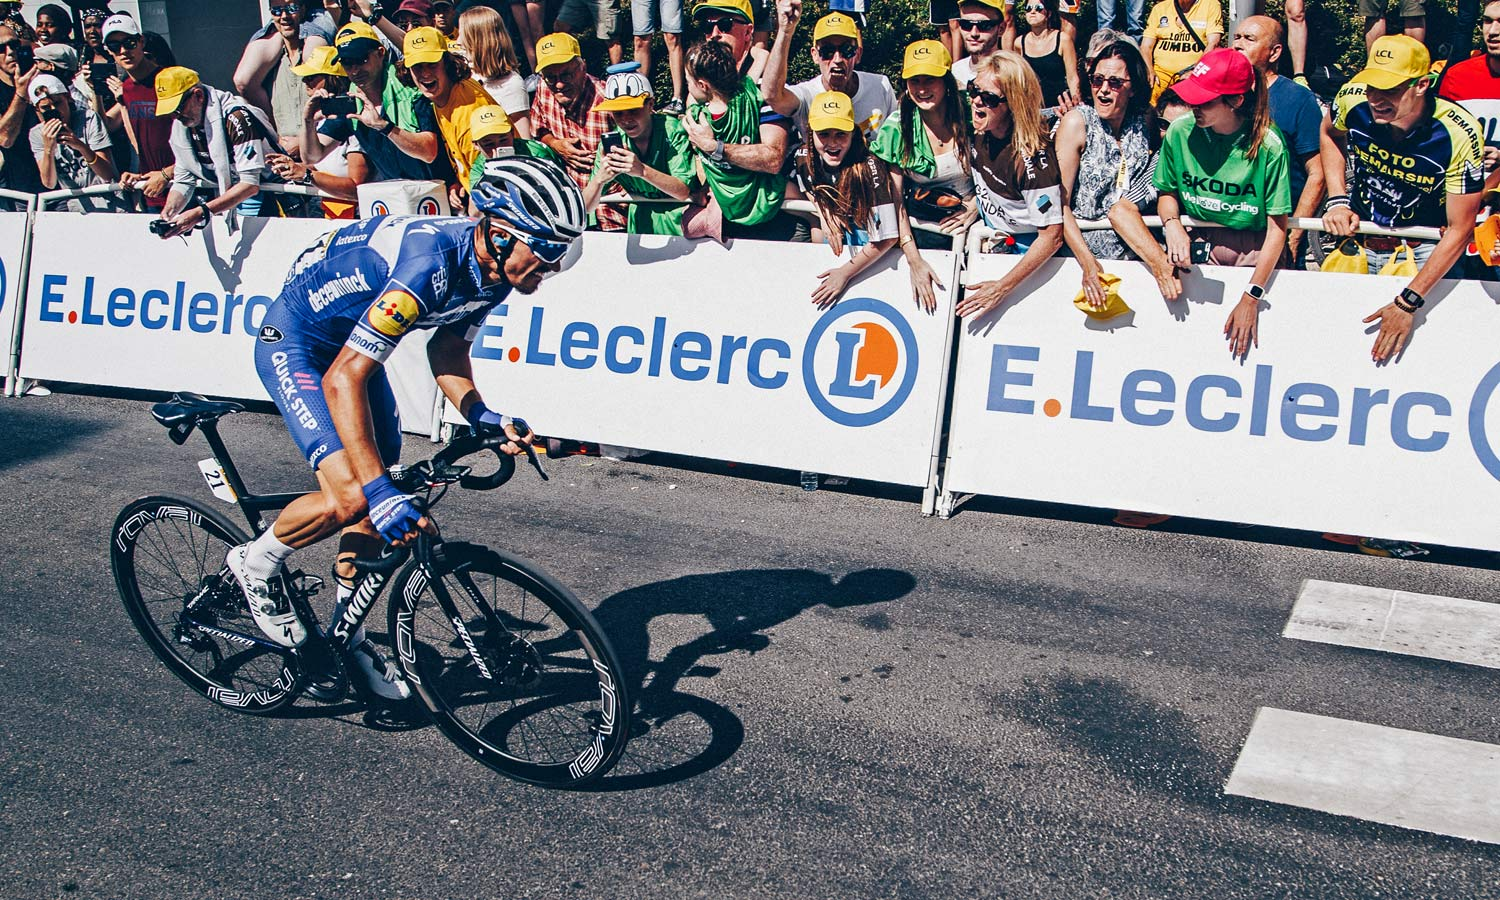 Specialized Turbo RapidAir road tubeless, pro-level tubeless road bike tire, Julian Alaphilippe yellow jersey holder Tour de France 2019, photo by CyclingImages